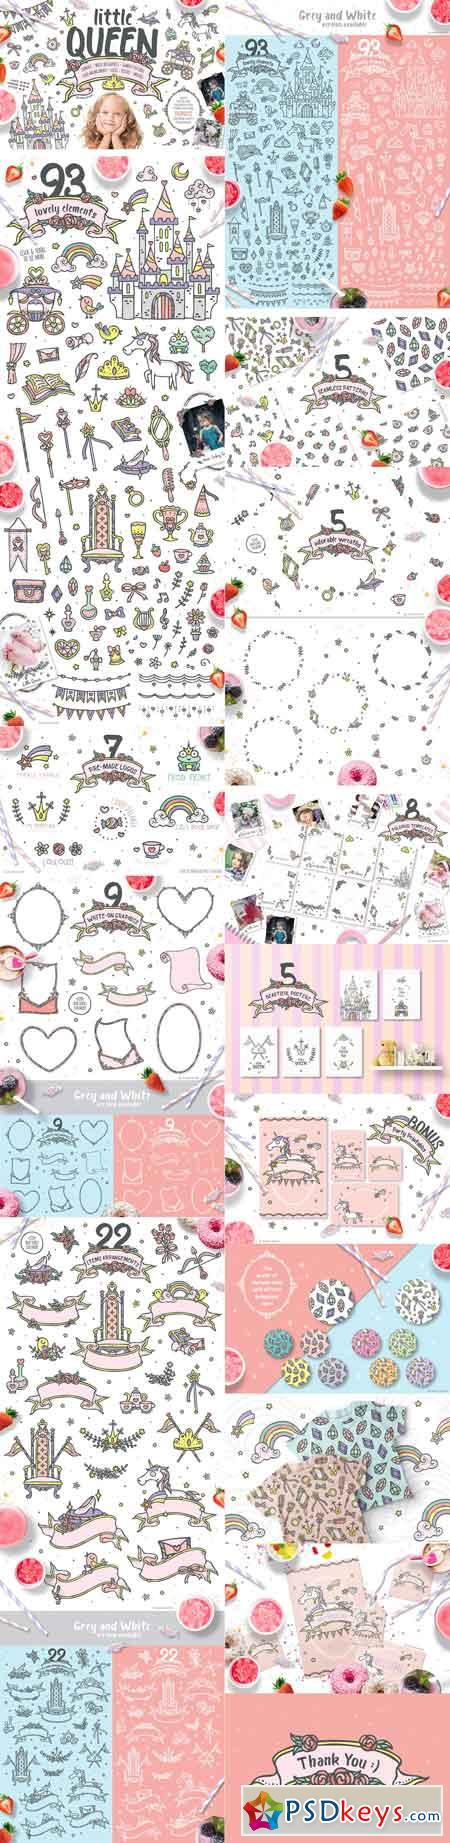 Little Queen princess graphic pack 2131407